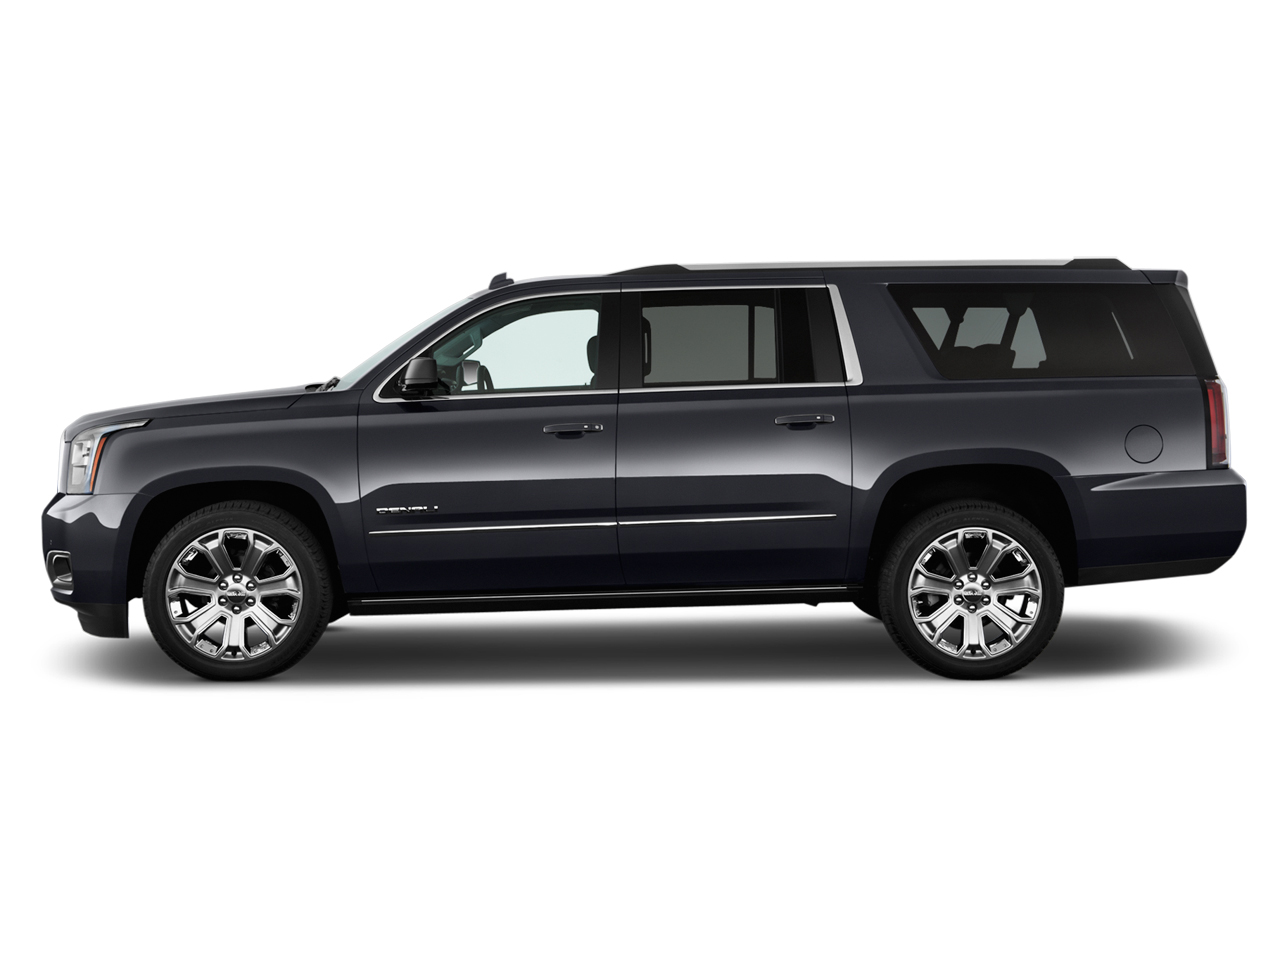 gmc yukon xl denali 2018 6 2l denali in uae new car prices specs reviews photos yallamotor. Black Bedroom Furniture Sets. Home Design Ideas